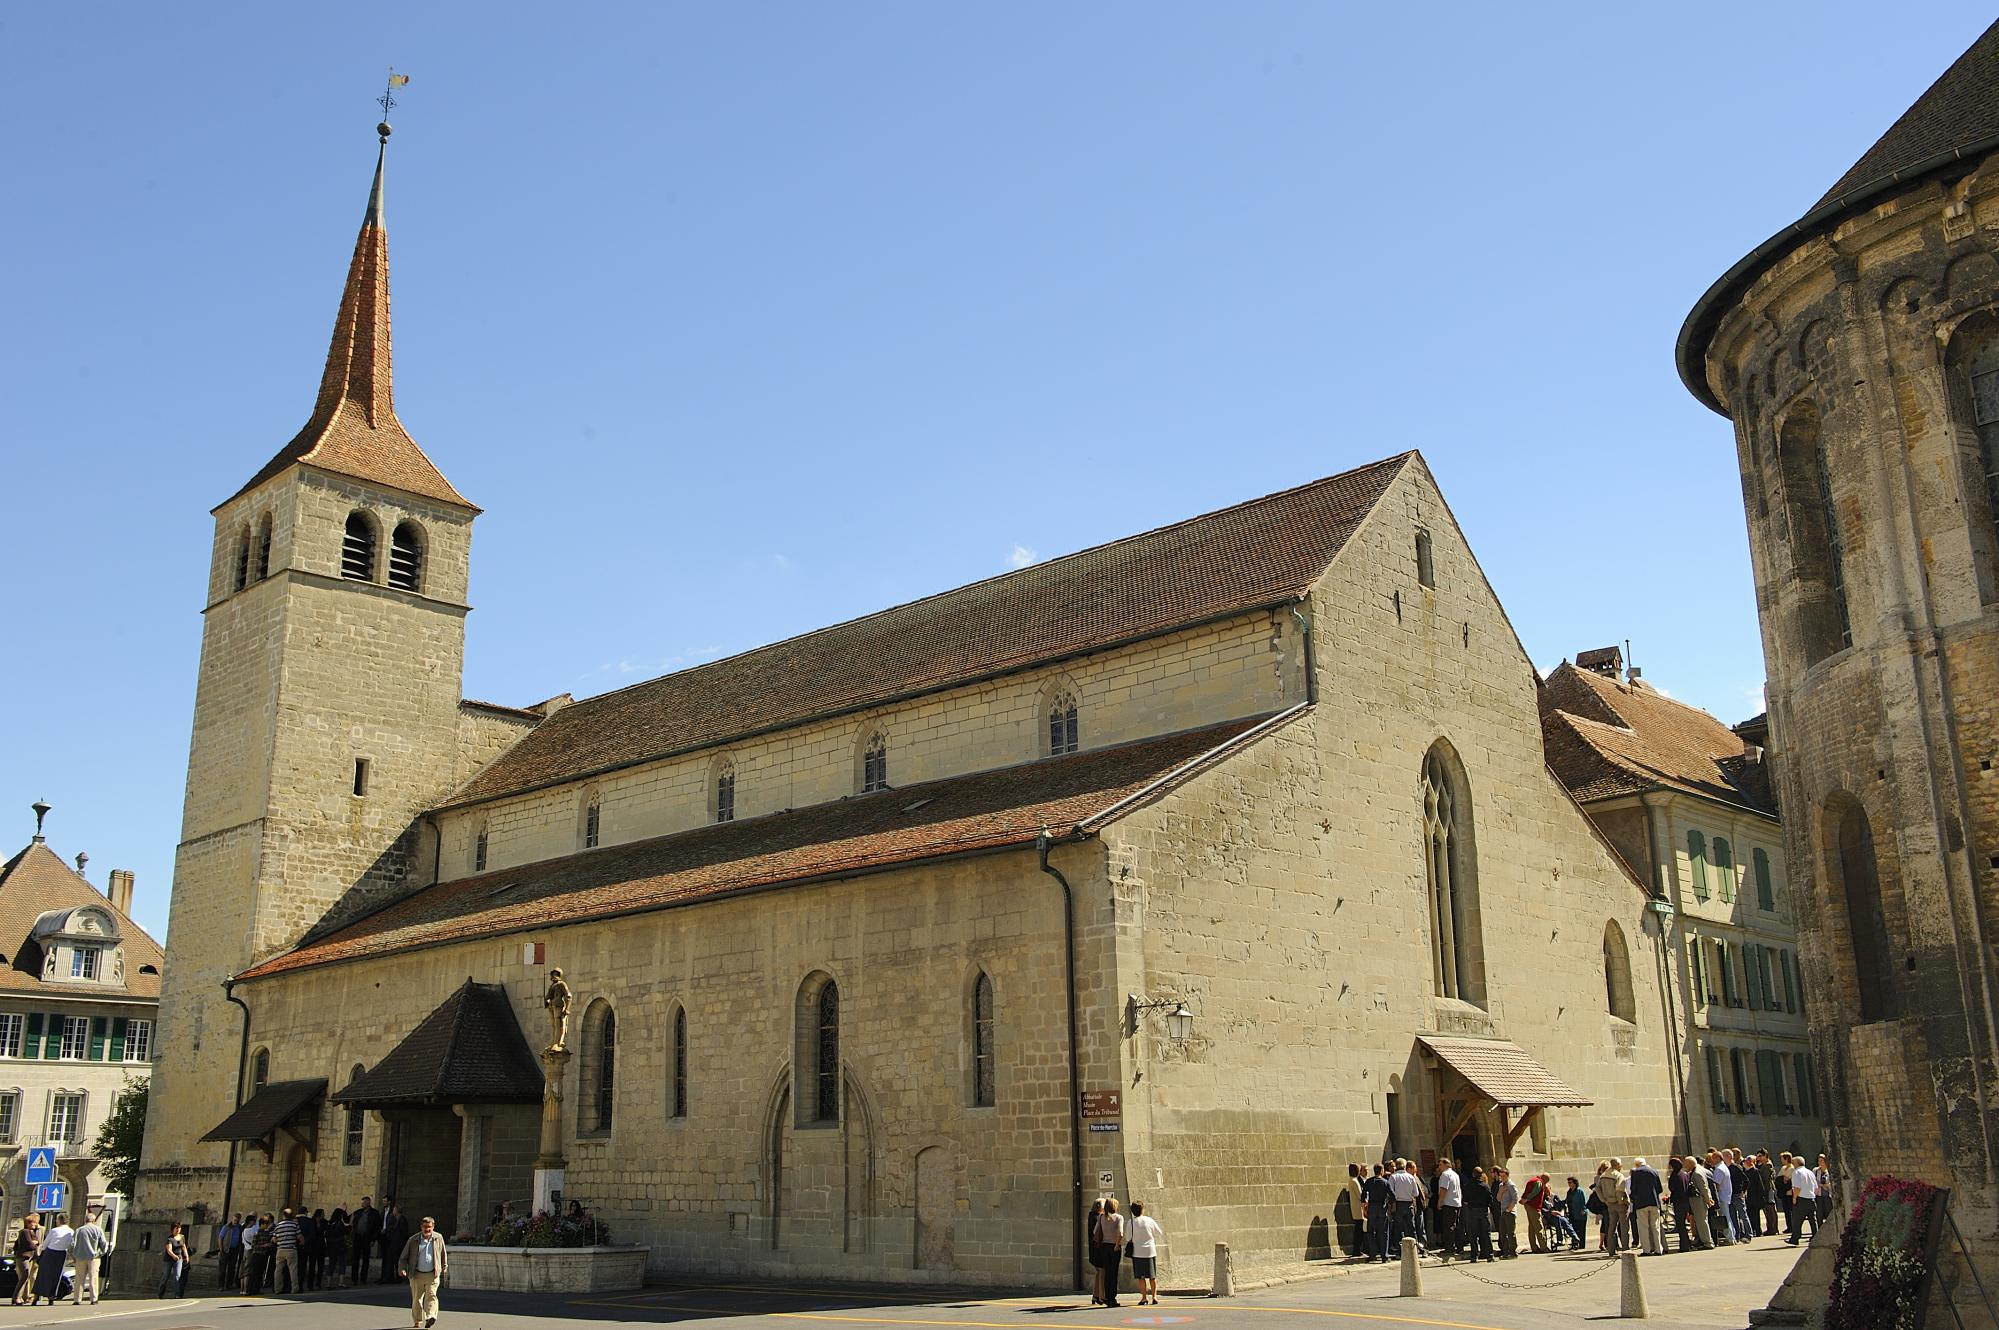 The Payerne Abbey Church